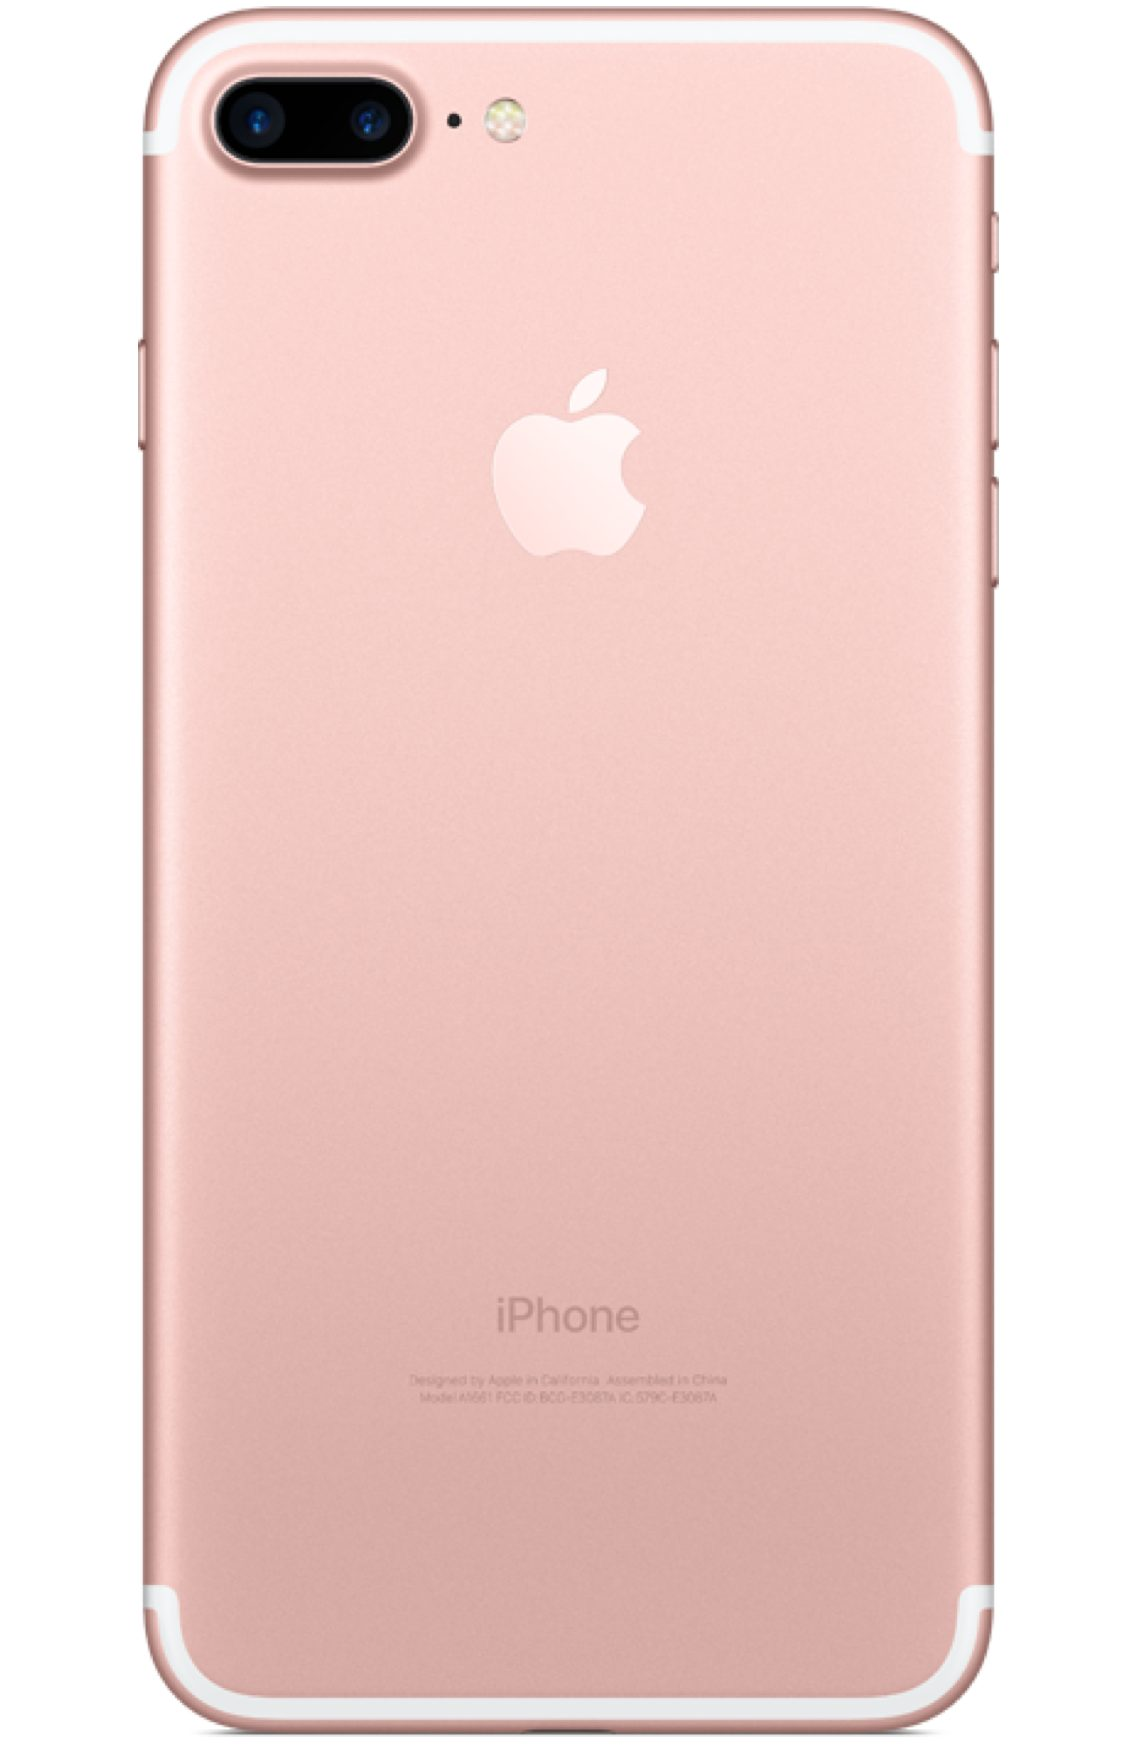 Certified Pre-Owned iPhone 7 Plus, 32GB, Gold, Boost Mobile